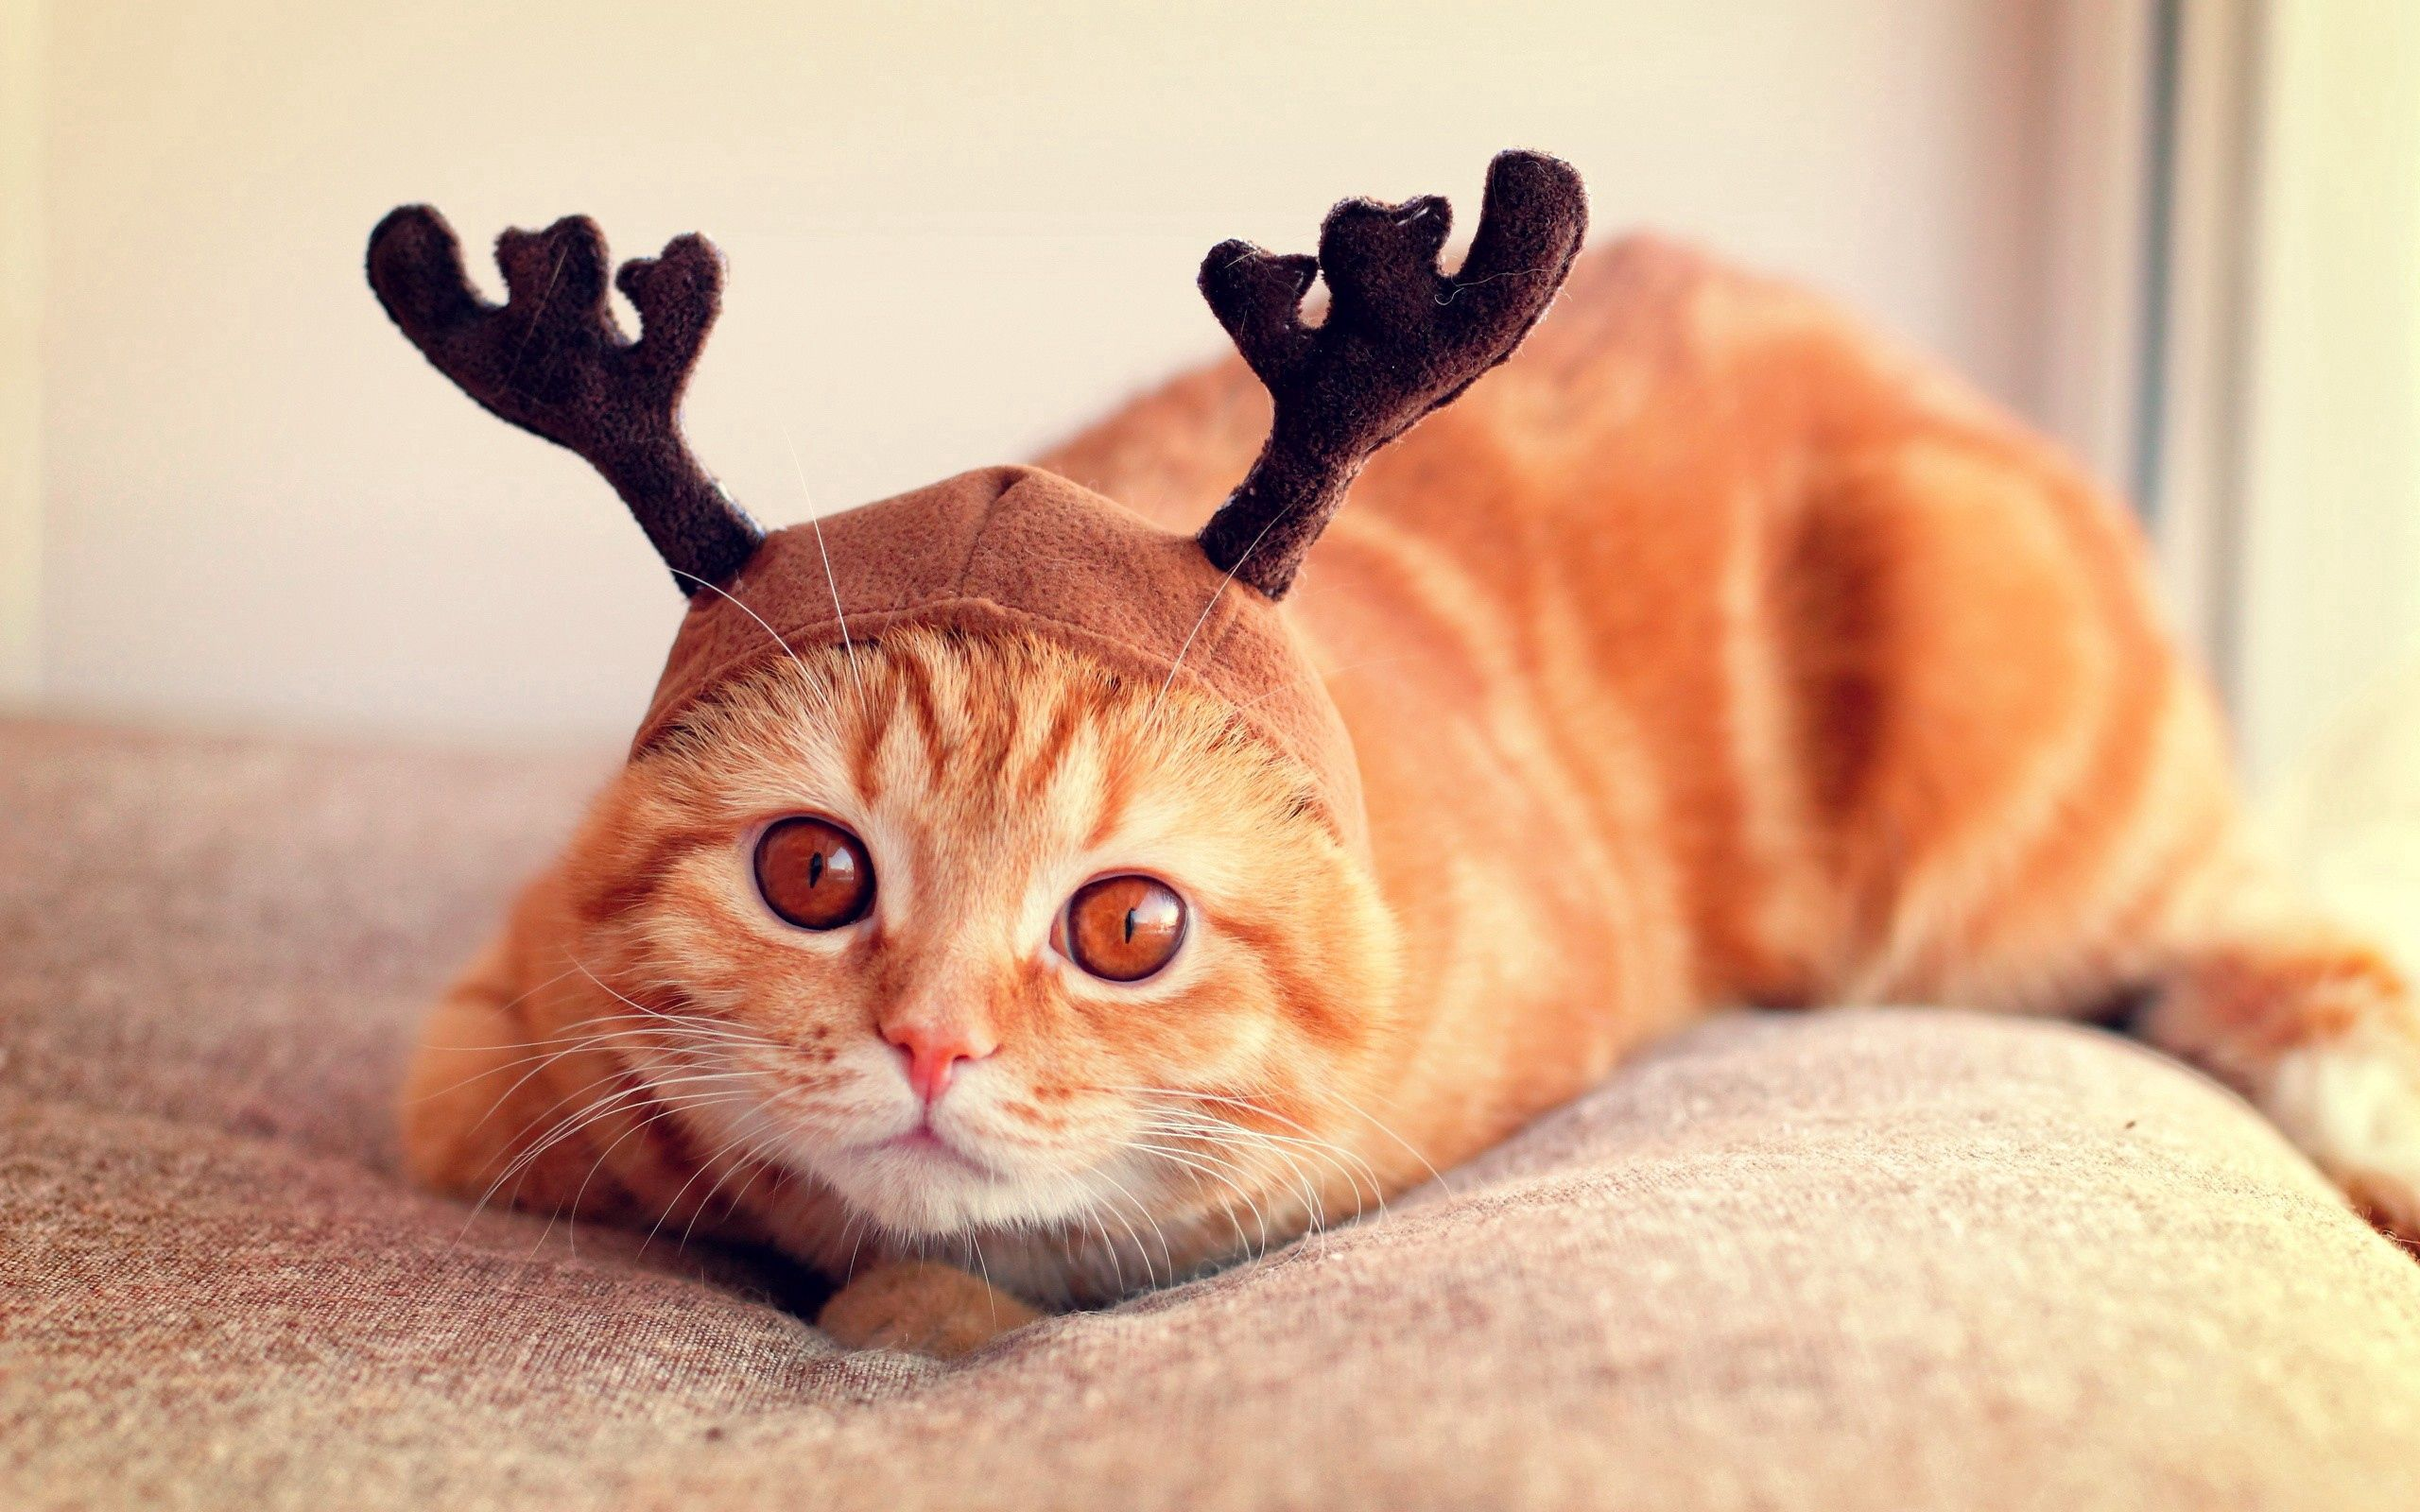 135436 download wallpaper Animals, Cat, Cap, Horns, Cool, To Lie Down, Lie screensavers and pictures for free